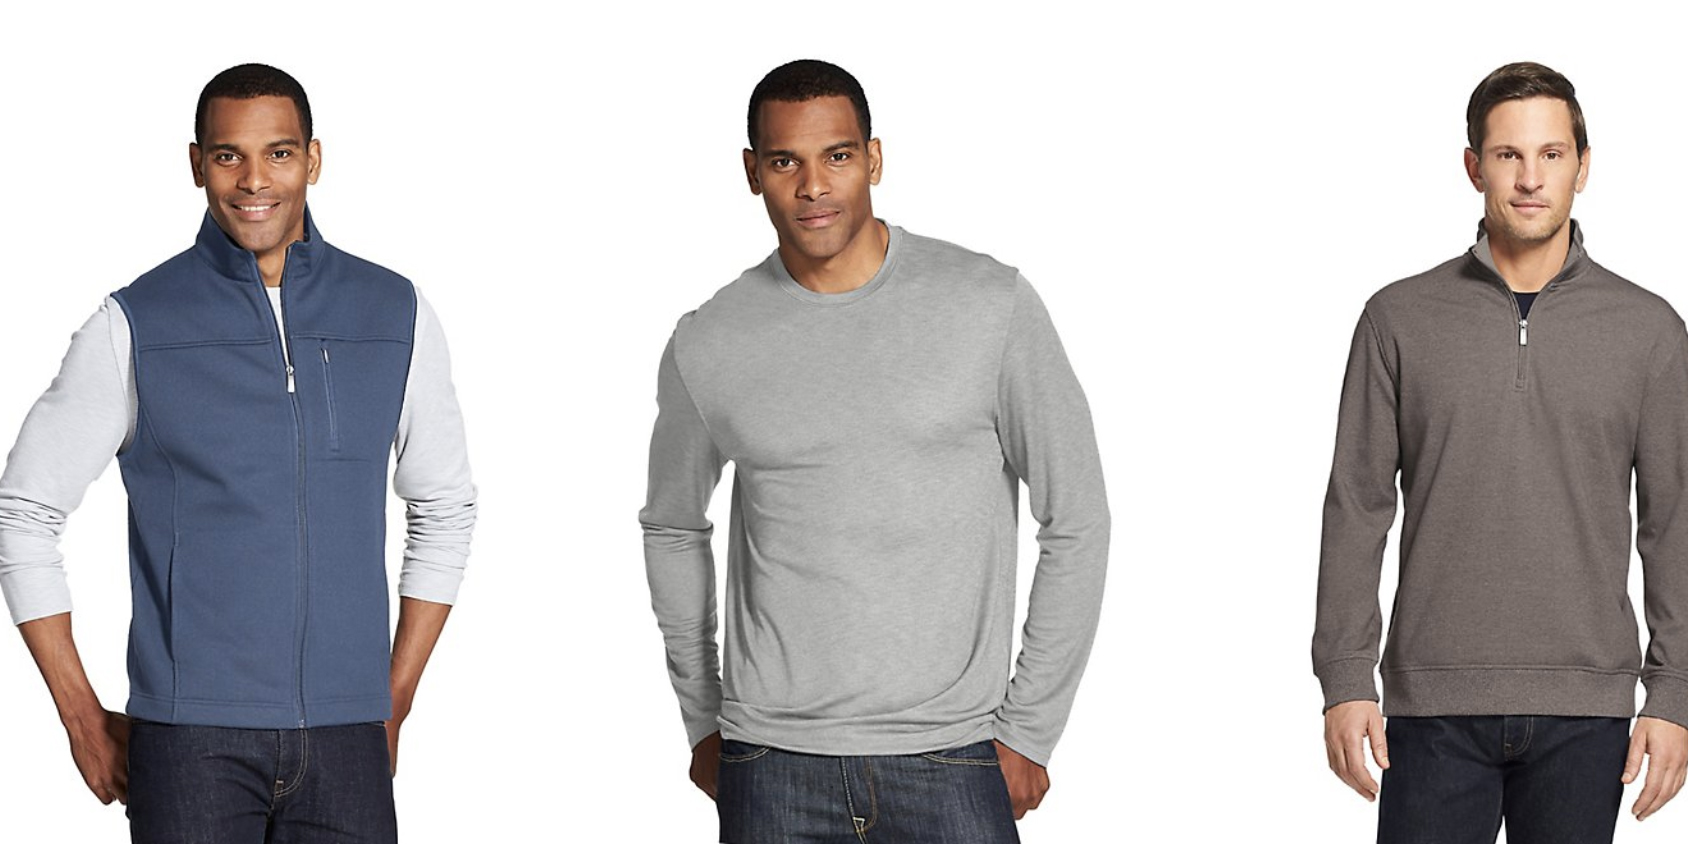 Upgrade your style in Van Heusen's 1-day Gold Box at Amazon from $5